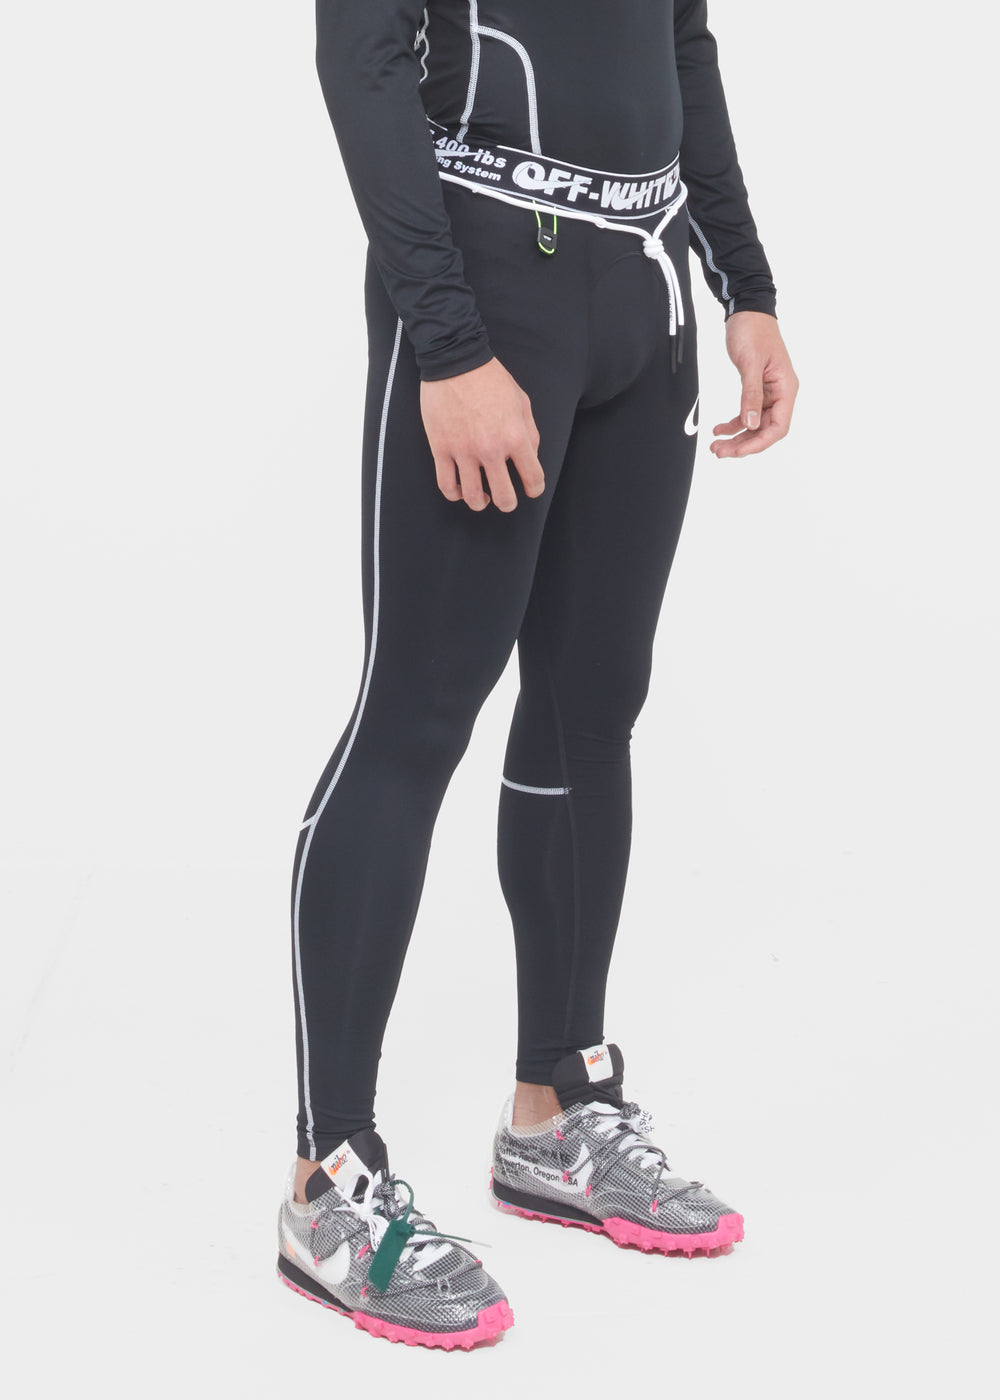 m-nike-ow-tight-cn5532-010-blk-2